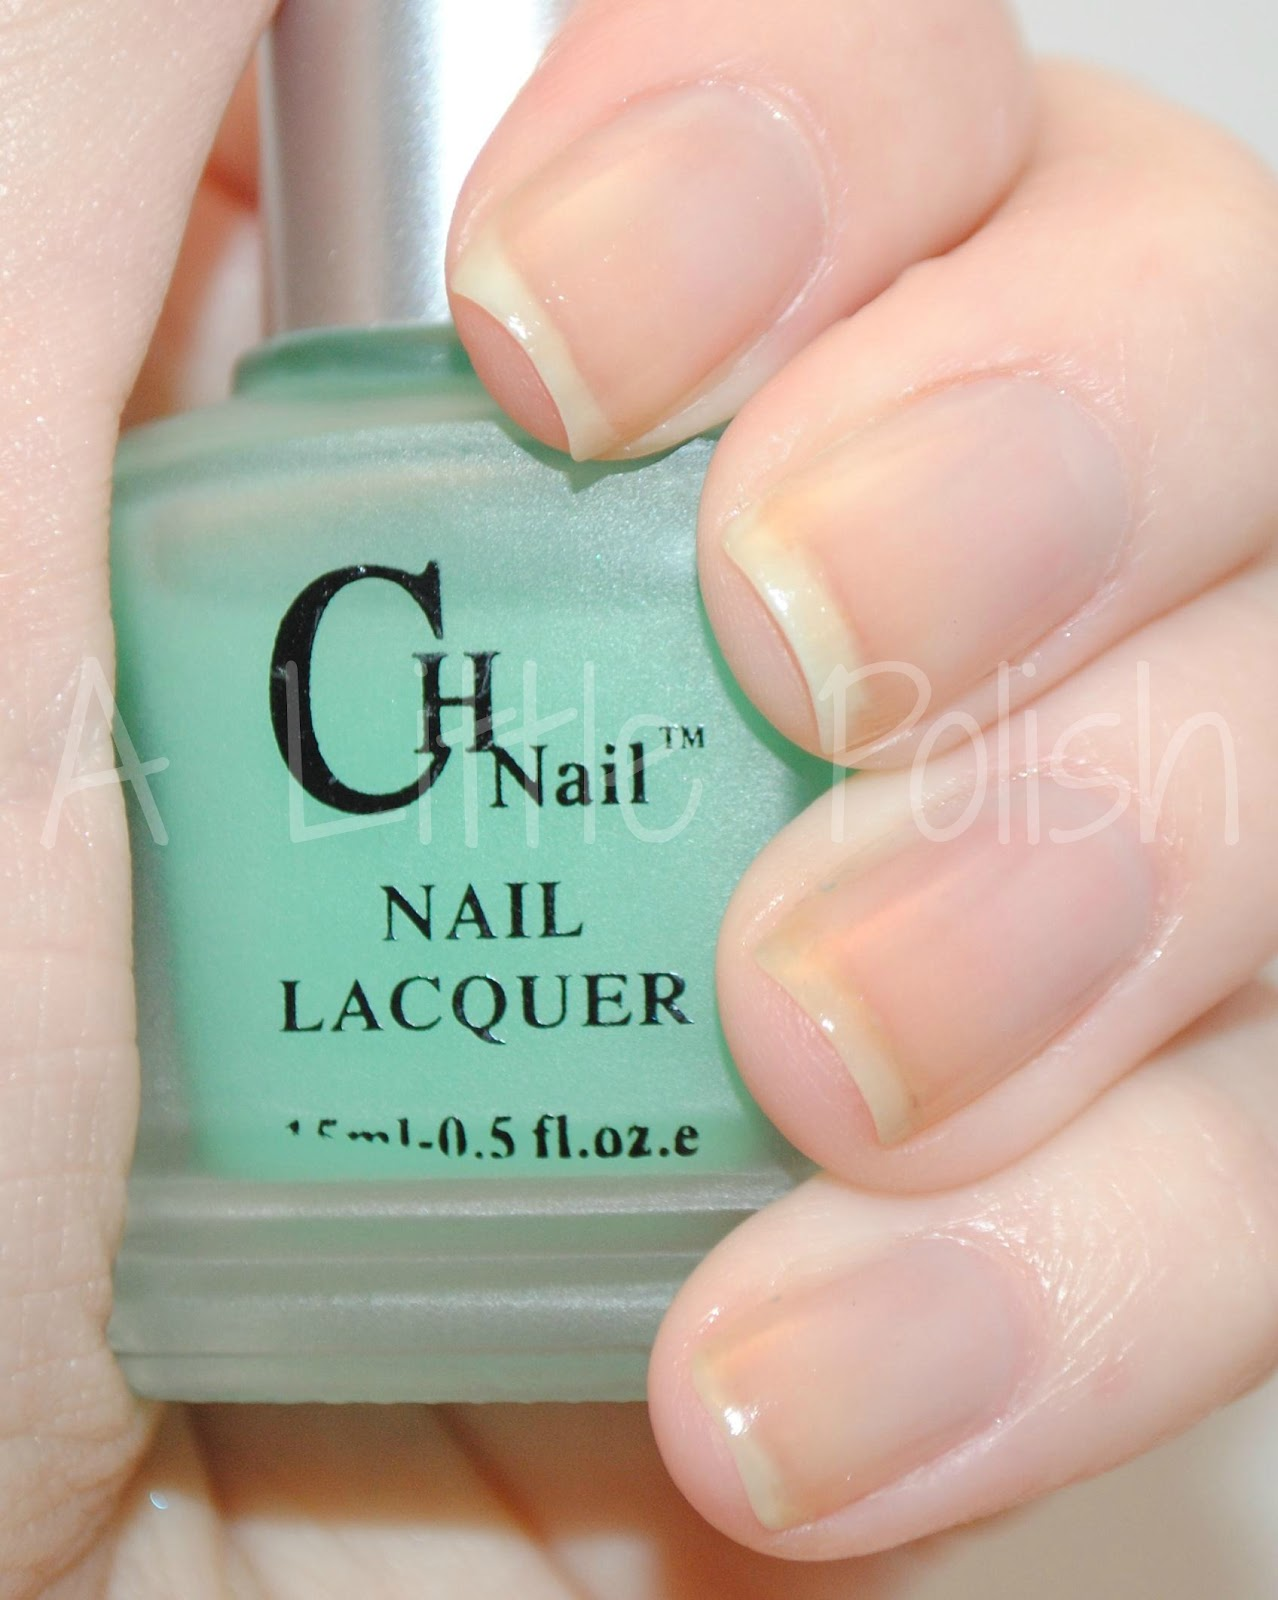 A Little Polish: CH Nail - Glow In The Dark Polish Review